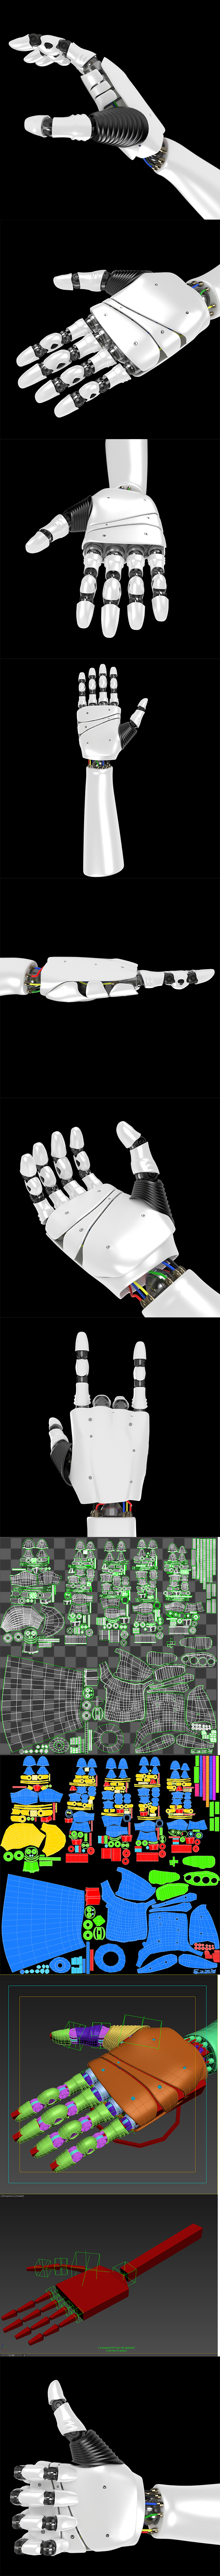 Robot Hand rigged - 3DOcean Item for Sale